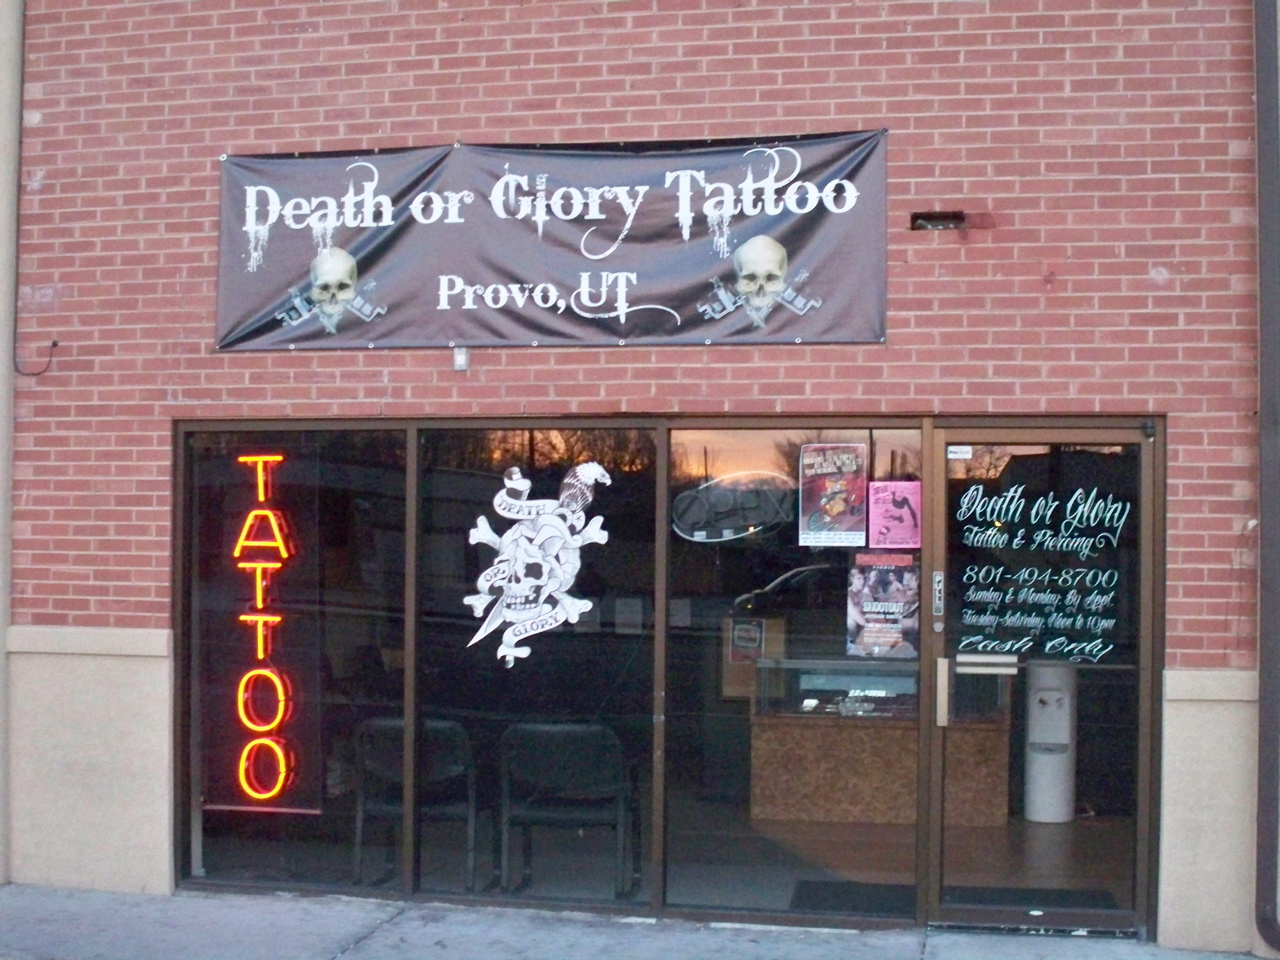 darker side of provo provo tattoo shop gospel in utah